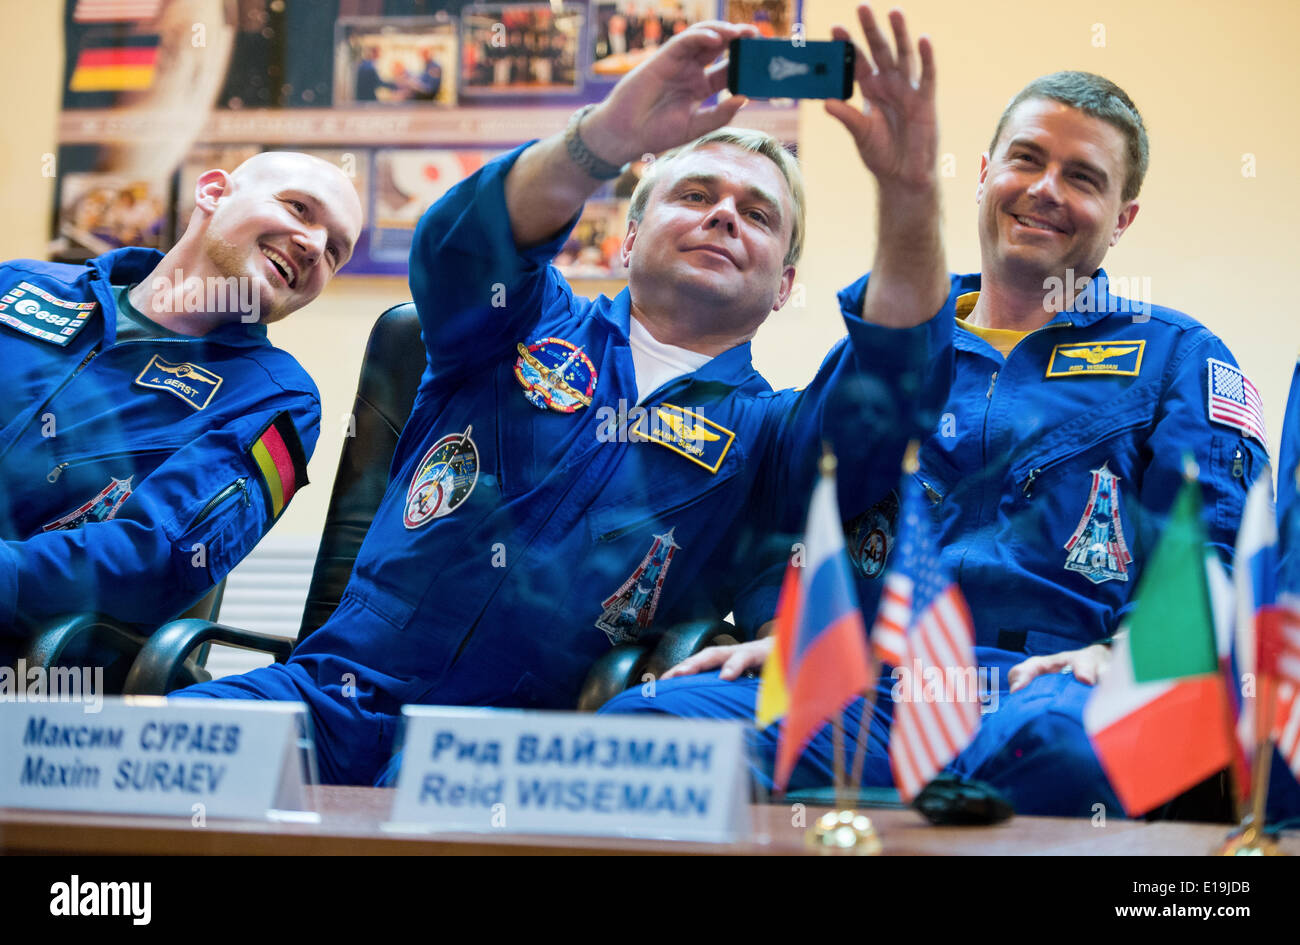 ISS Expedition Expedition 40 Soyuz Commander Maxim Suraev of the Russian Federal Space Agency, Roscosmos, center, takes a picture with his cell phone during a press conference as Alexander Gerst of the European Space Agency , Soyuz Commander Max Suraev of Roscosmos and Flight Engineer Reid Wiseman of NASA look on May 27, 2014 in Baikonur, Kazakhstan. The crew will launch on May 29 in the Soyuz TMA-13M spacecraft from Baikonur for a 5 ½ month mission on the International Space Station. - Stock Image